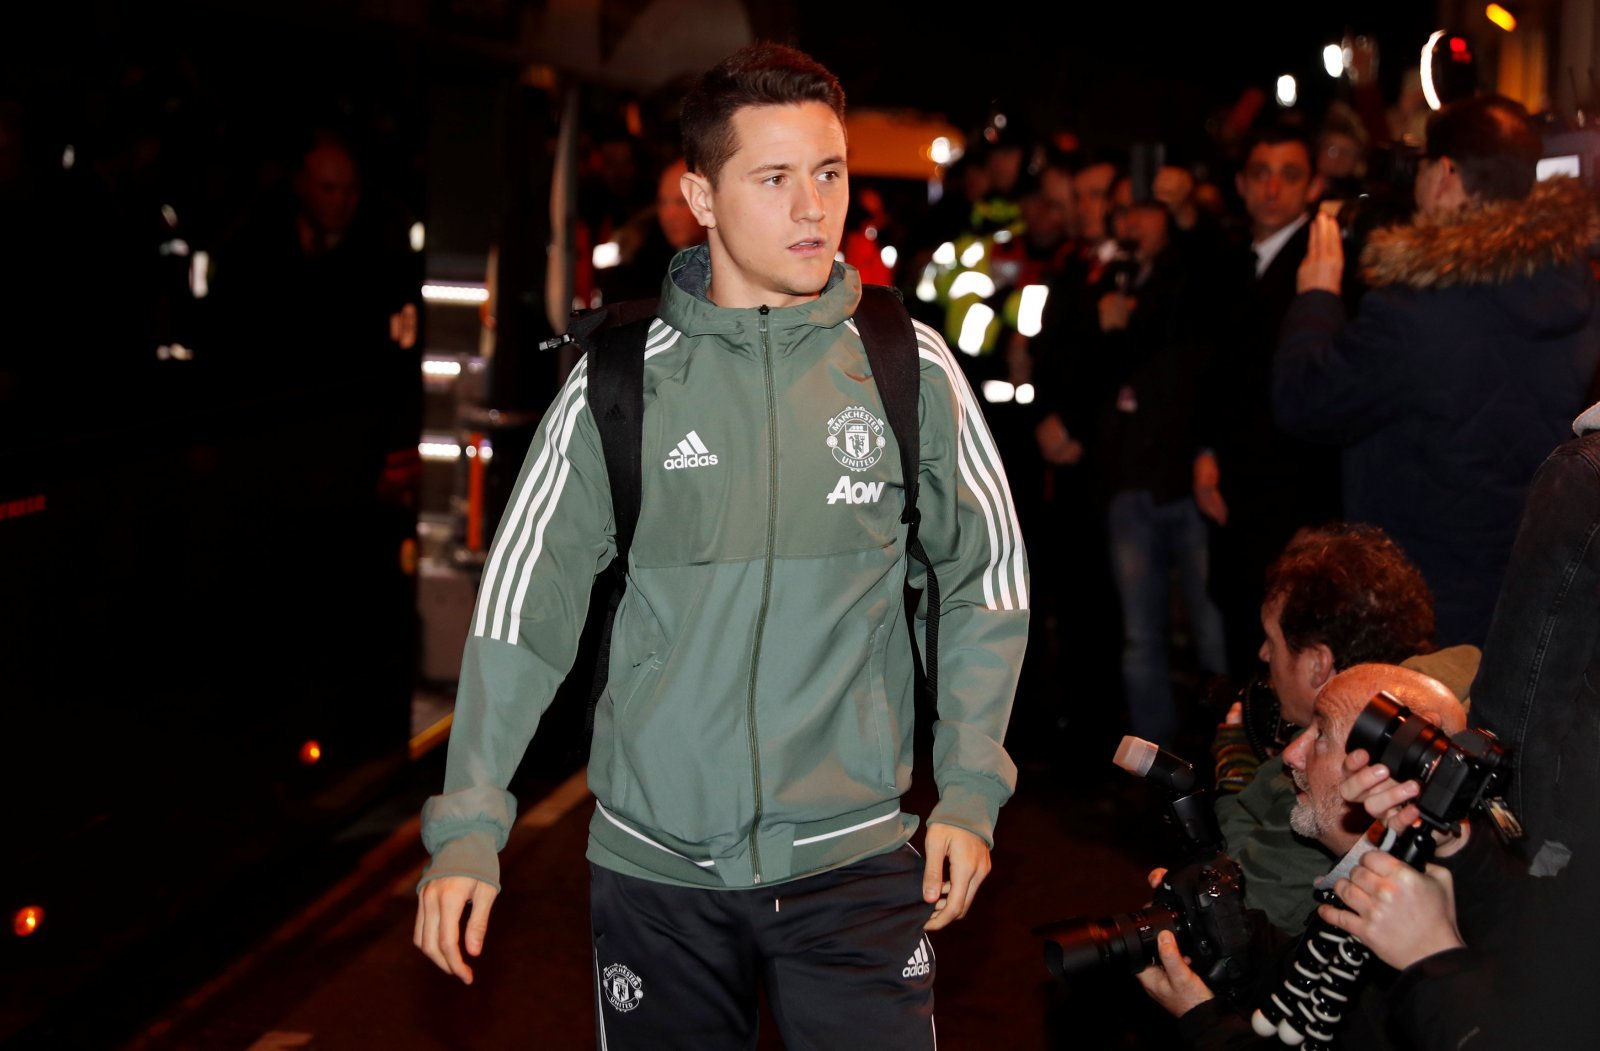 f41aa5cc2ead0 The Manchester United fans in the Transfer Tavern have been reacting to  comments made by their 28-year-old midfielder, Ander Herrera.